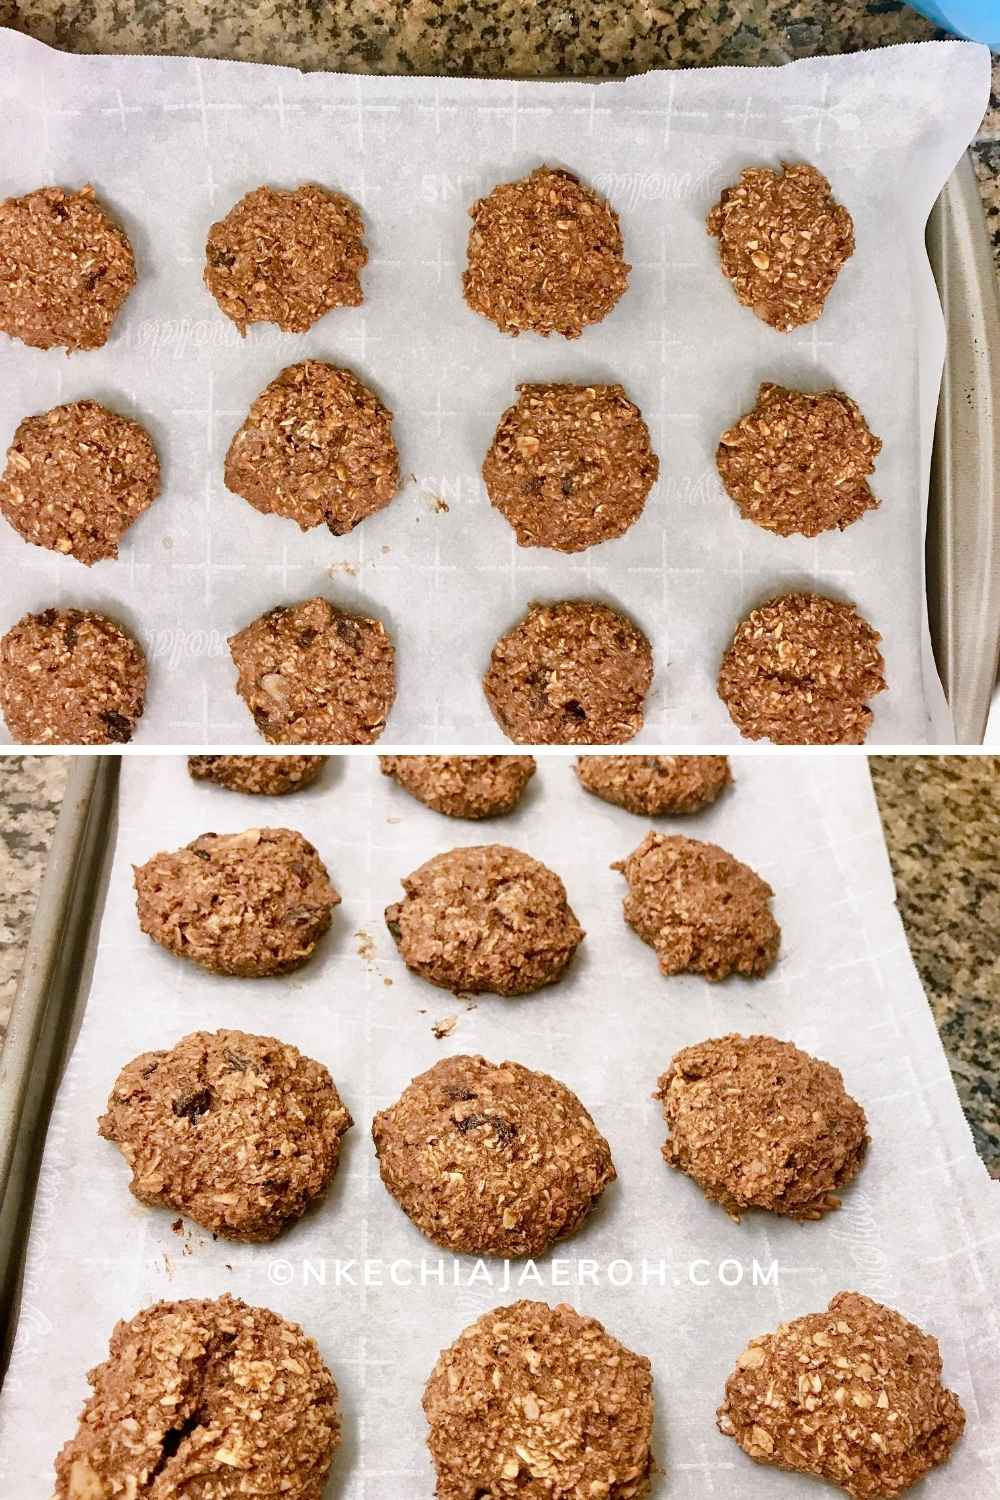 These healthy vegan almond oats cacao cookie is just the perfect breakfast cookies you have been looking for. The is the before and after the oven process photo. Honestly, you may not see the difference, but you will surely taste the difference.